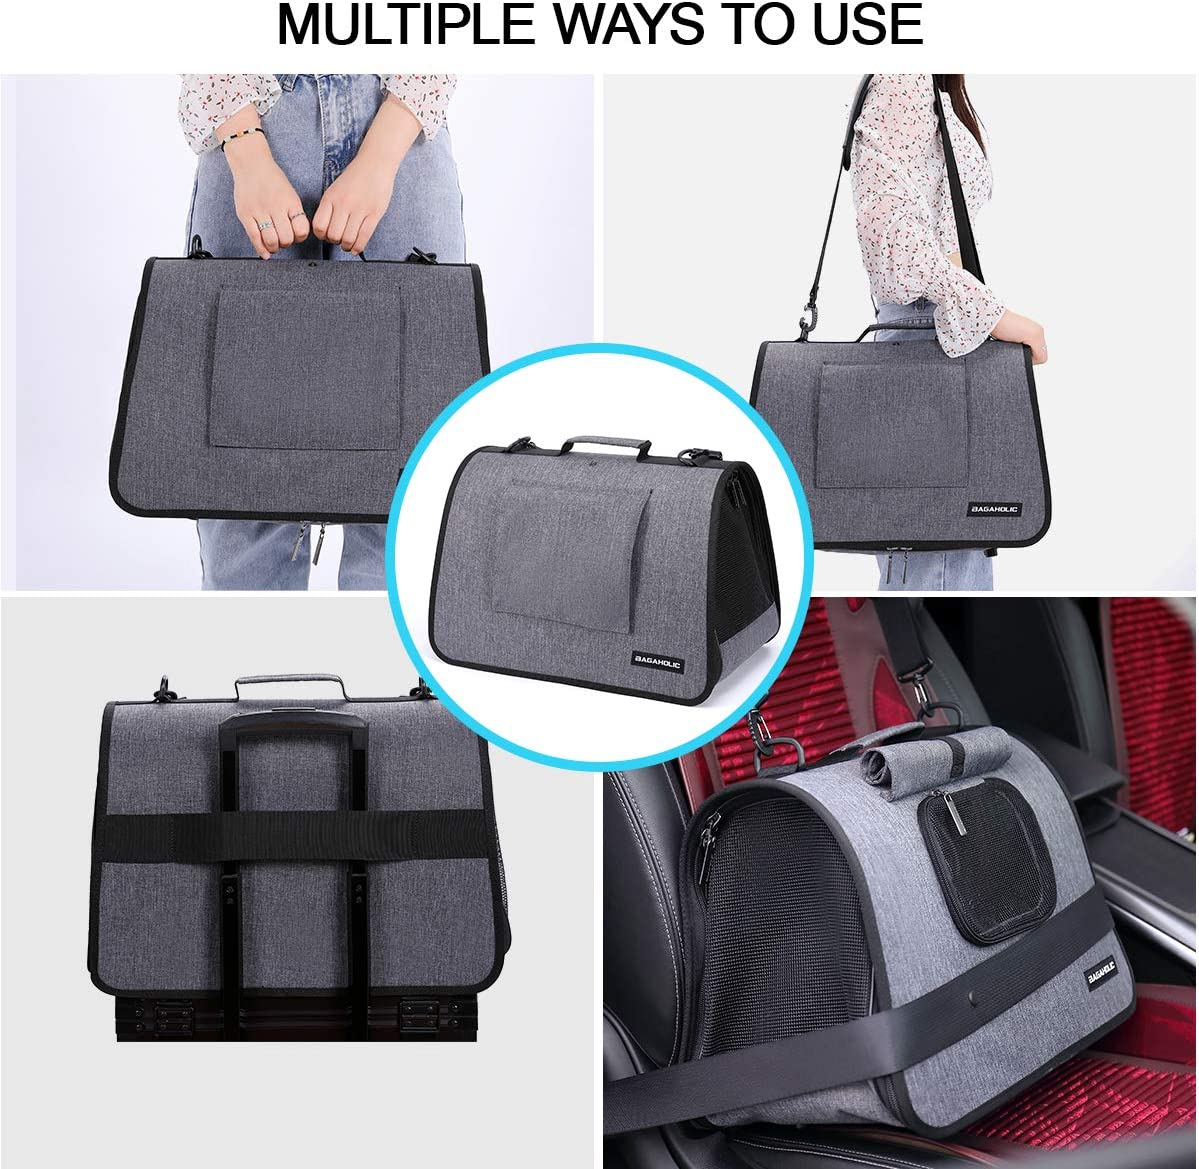 Portable Pet Travel Bag for Cats /&Small Dogs NNA Foldable Pet Carrier Waterproof Pet Cage with Locking Safety Zippers